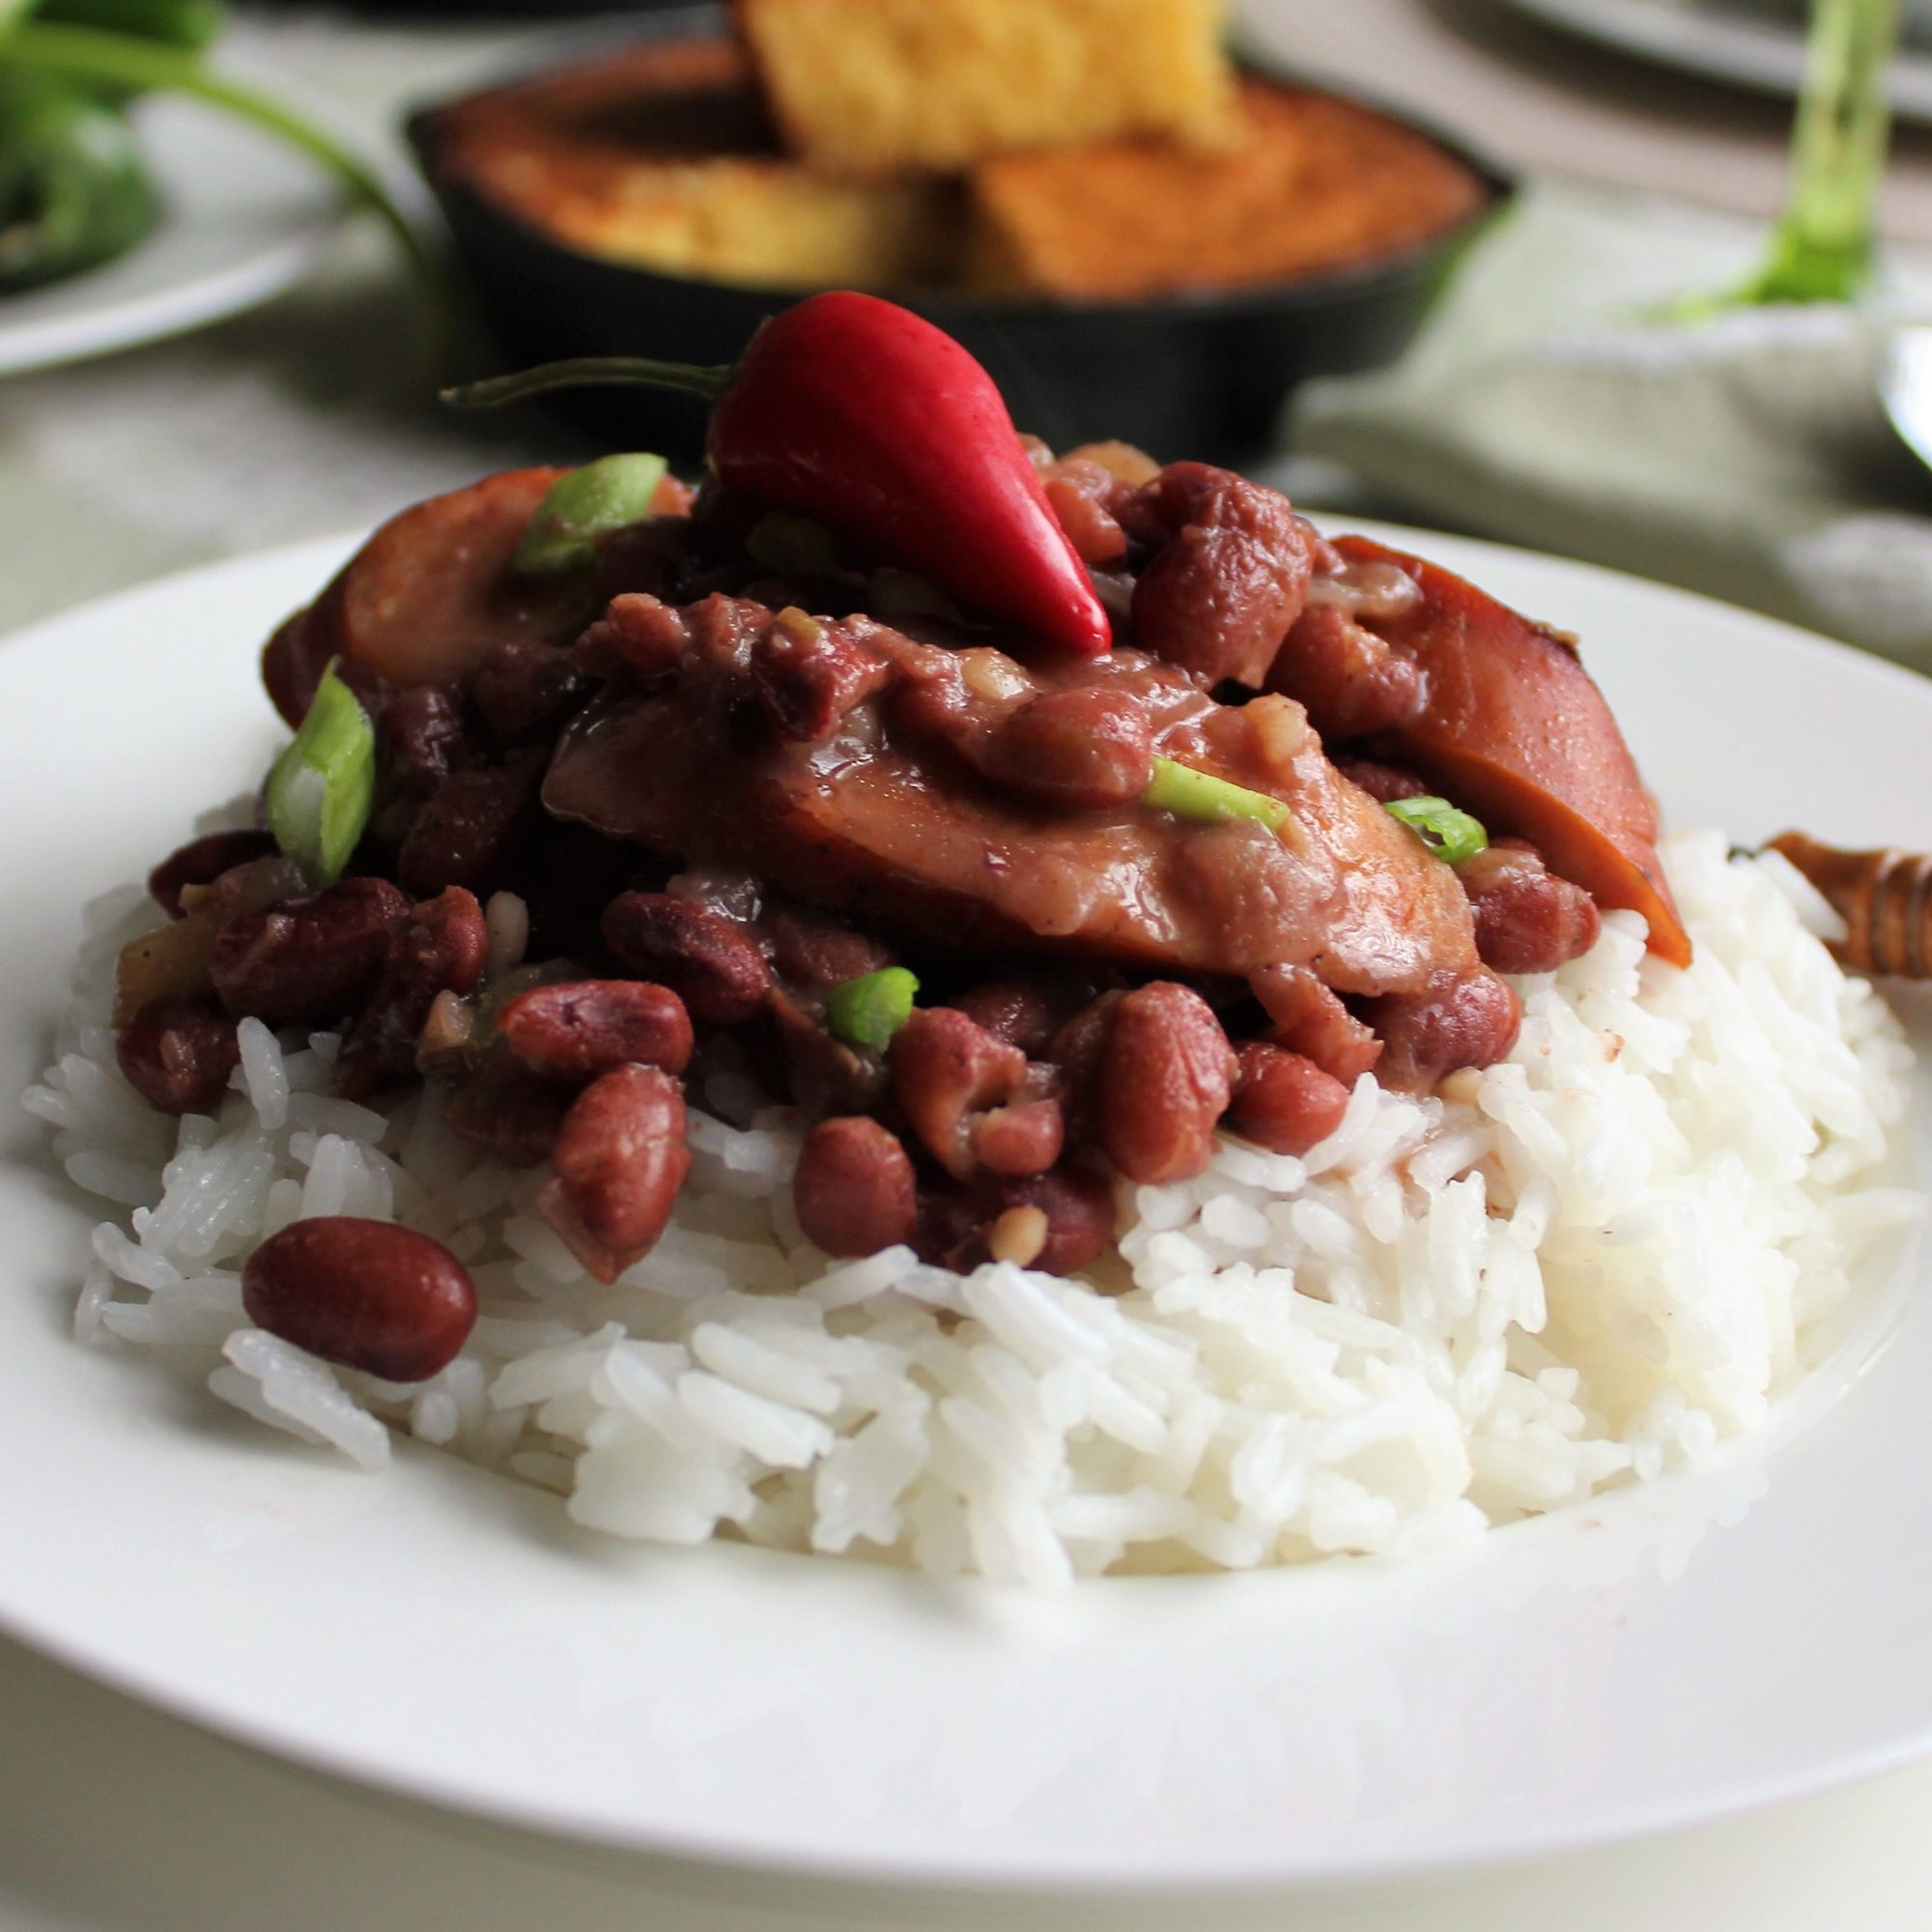 Authentic Louisiana Red Beans and Rice on a white plate